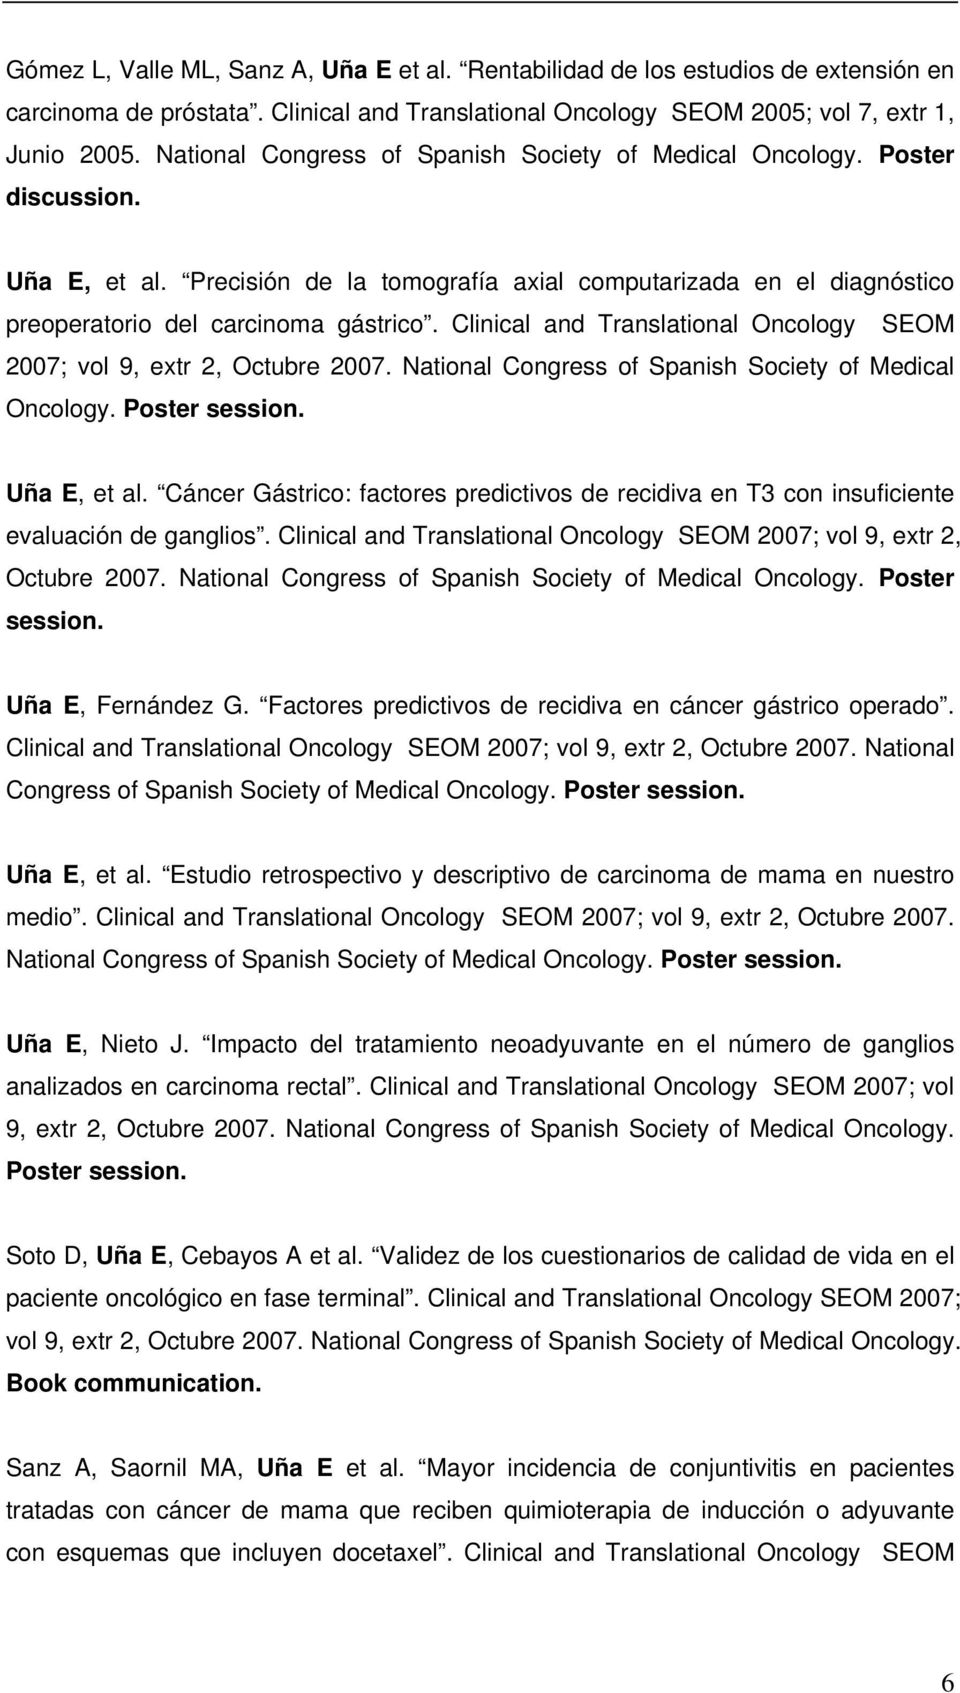 Clinical and Translational Oncology SEOM 2007; vol 9, extr 2, Octubre 2007. National Congress of Spanish Society of Medical Oncology. Poster session. Uña E, et al.